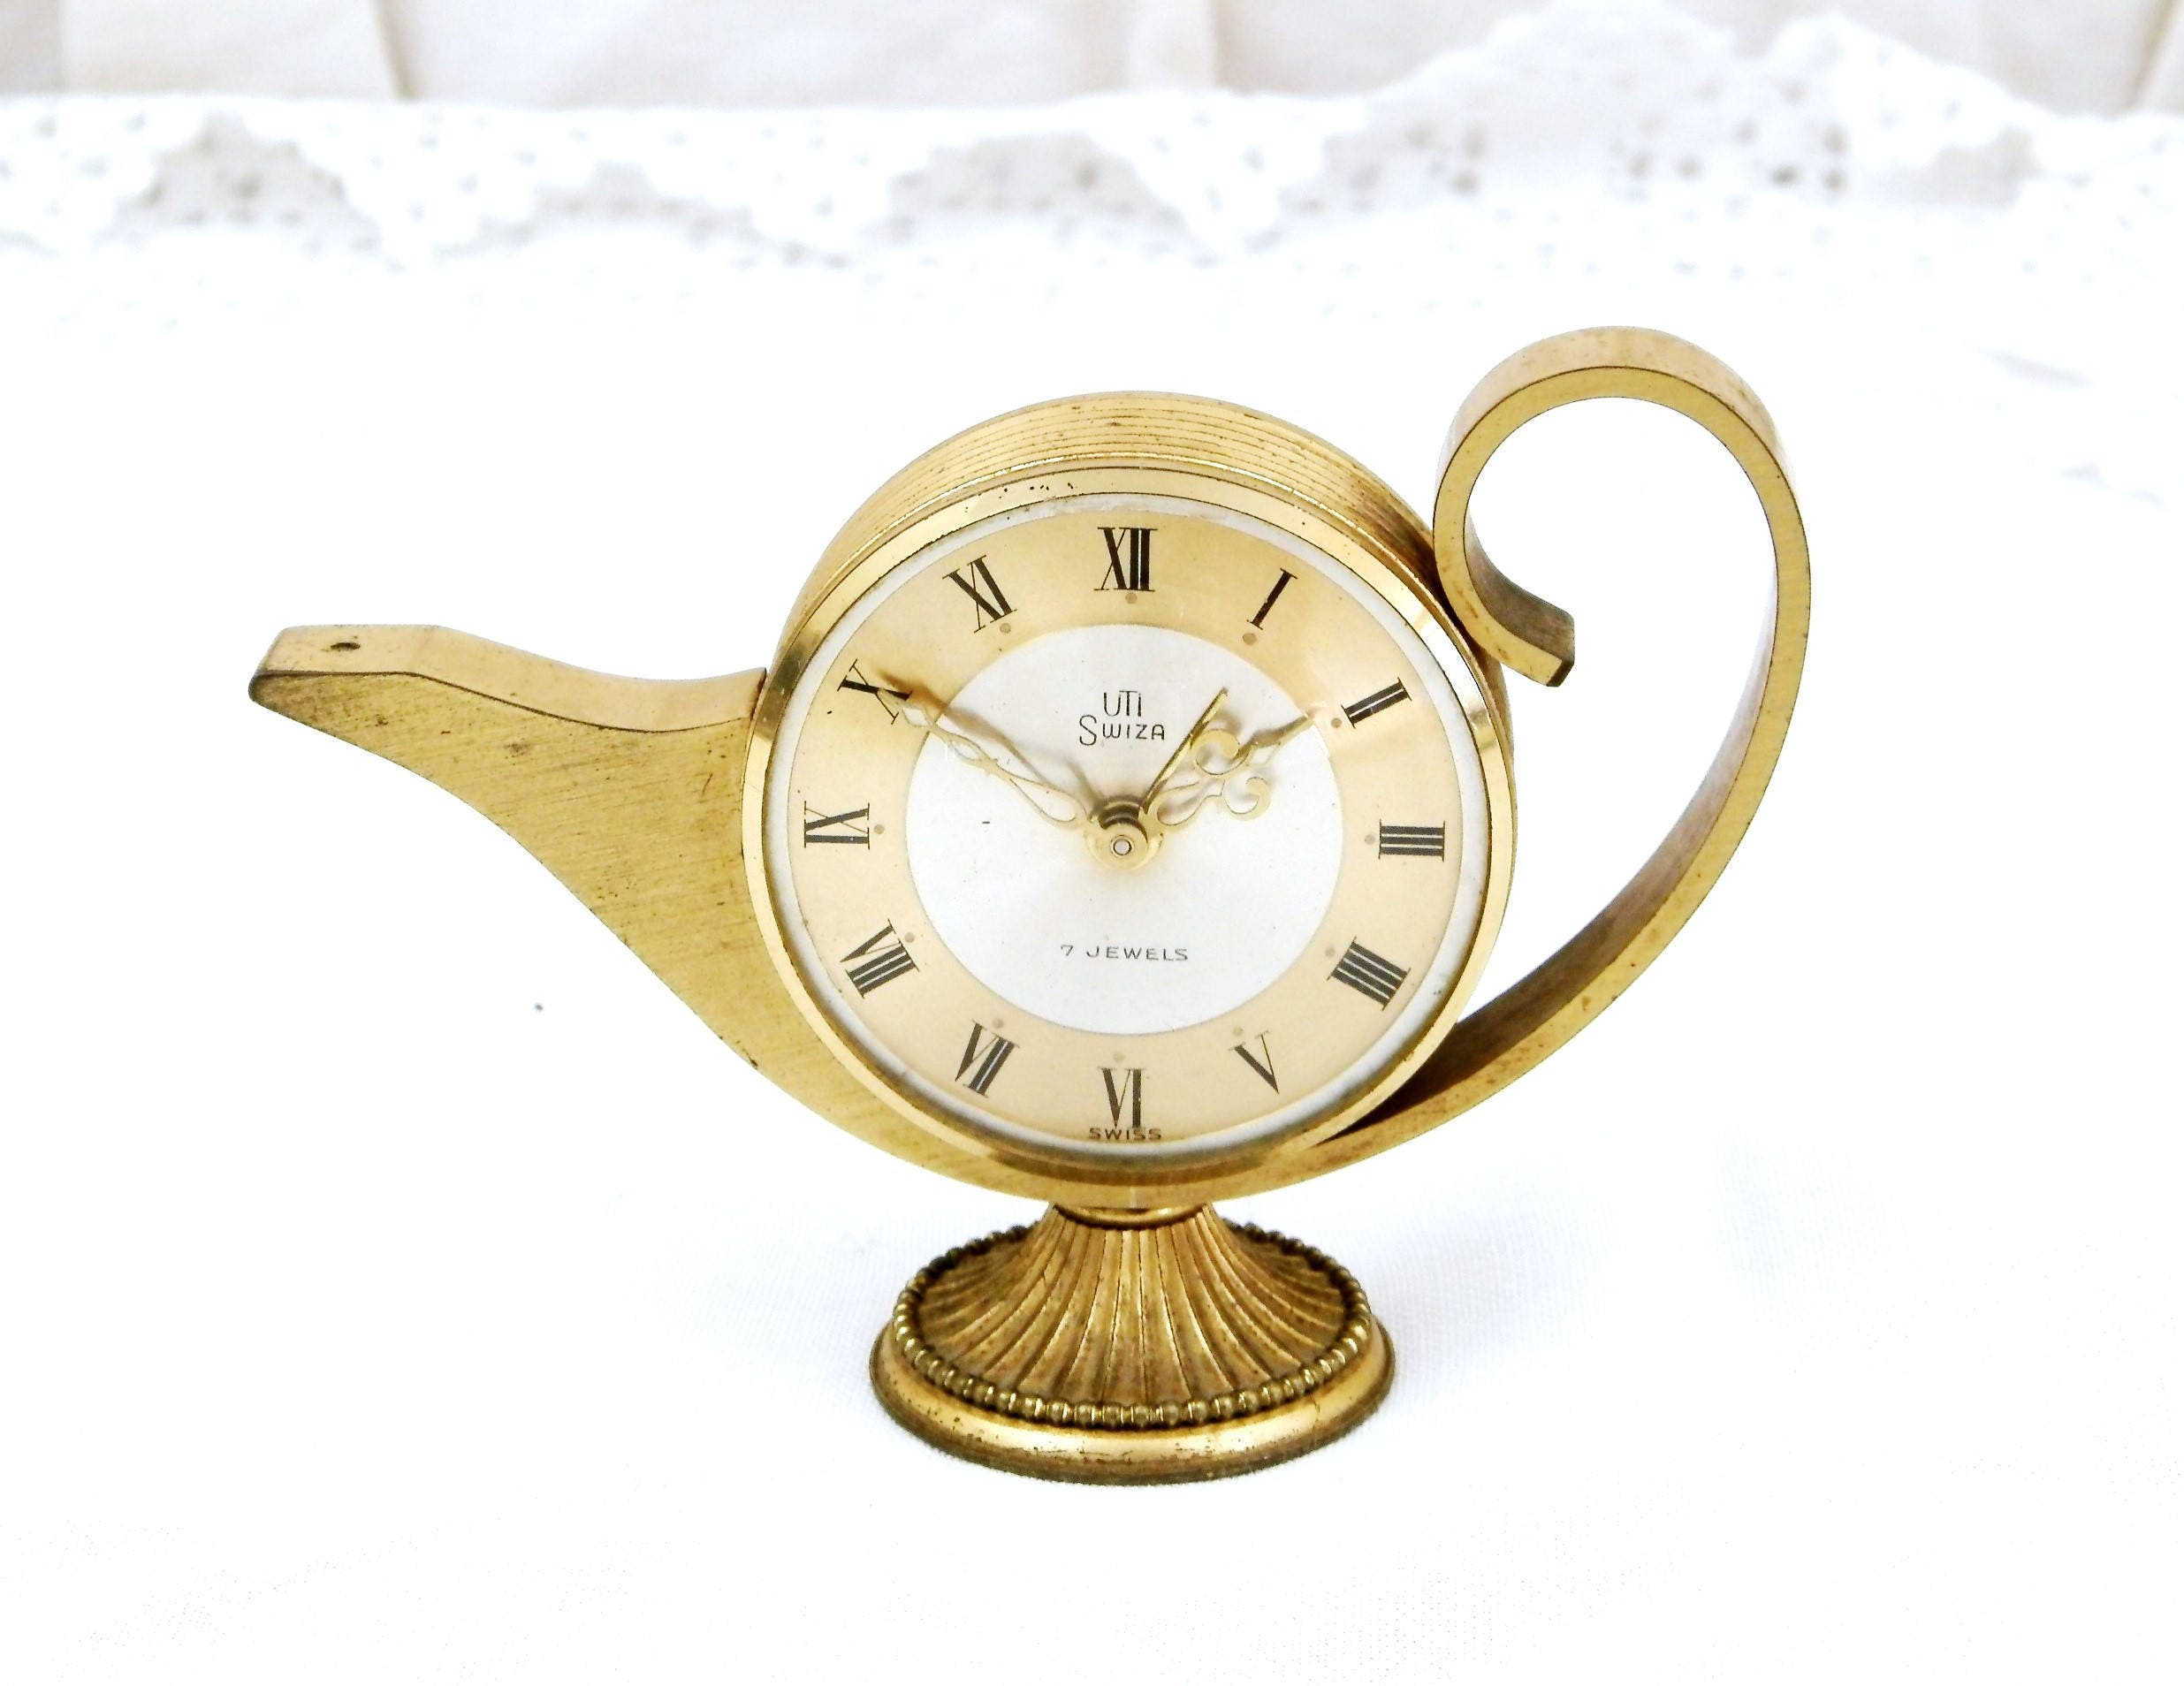 working vintage alarm clock swiss swiza mid century 7 jewels gold 1950s mechanical windup clock retro bedroom decor brocante timepiece